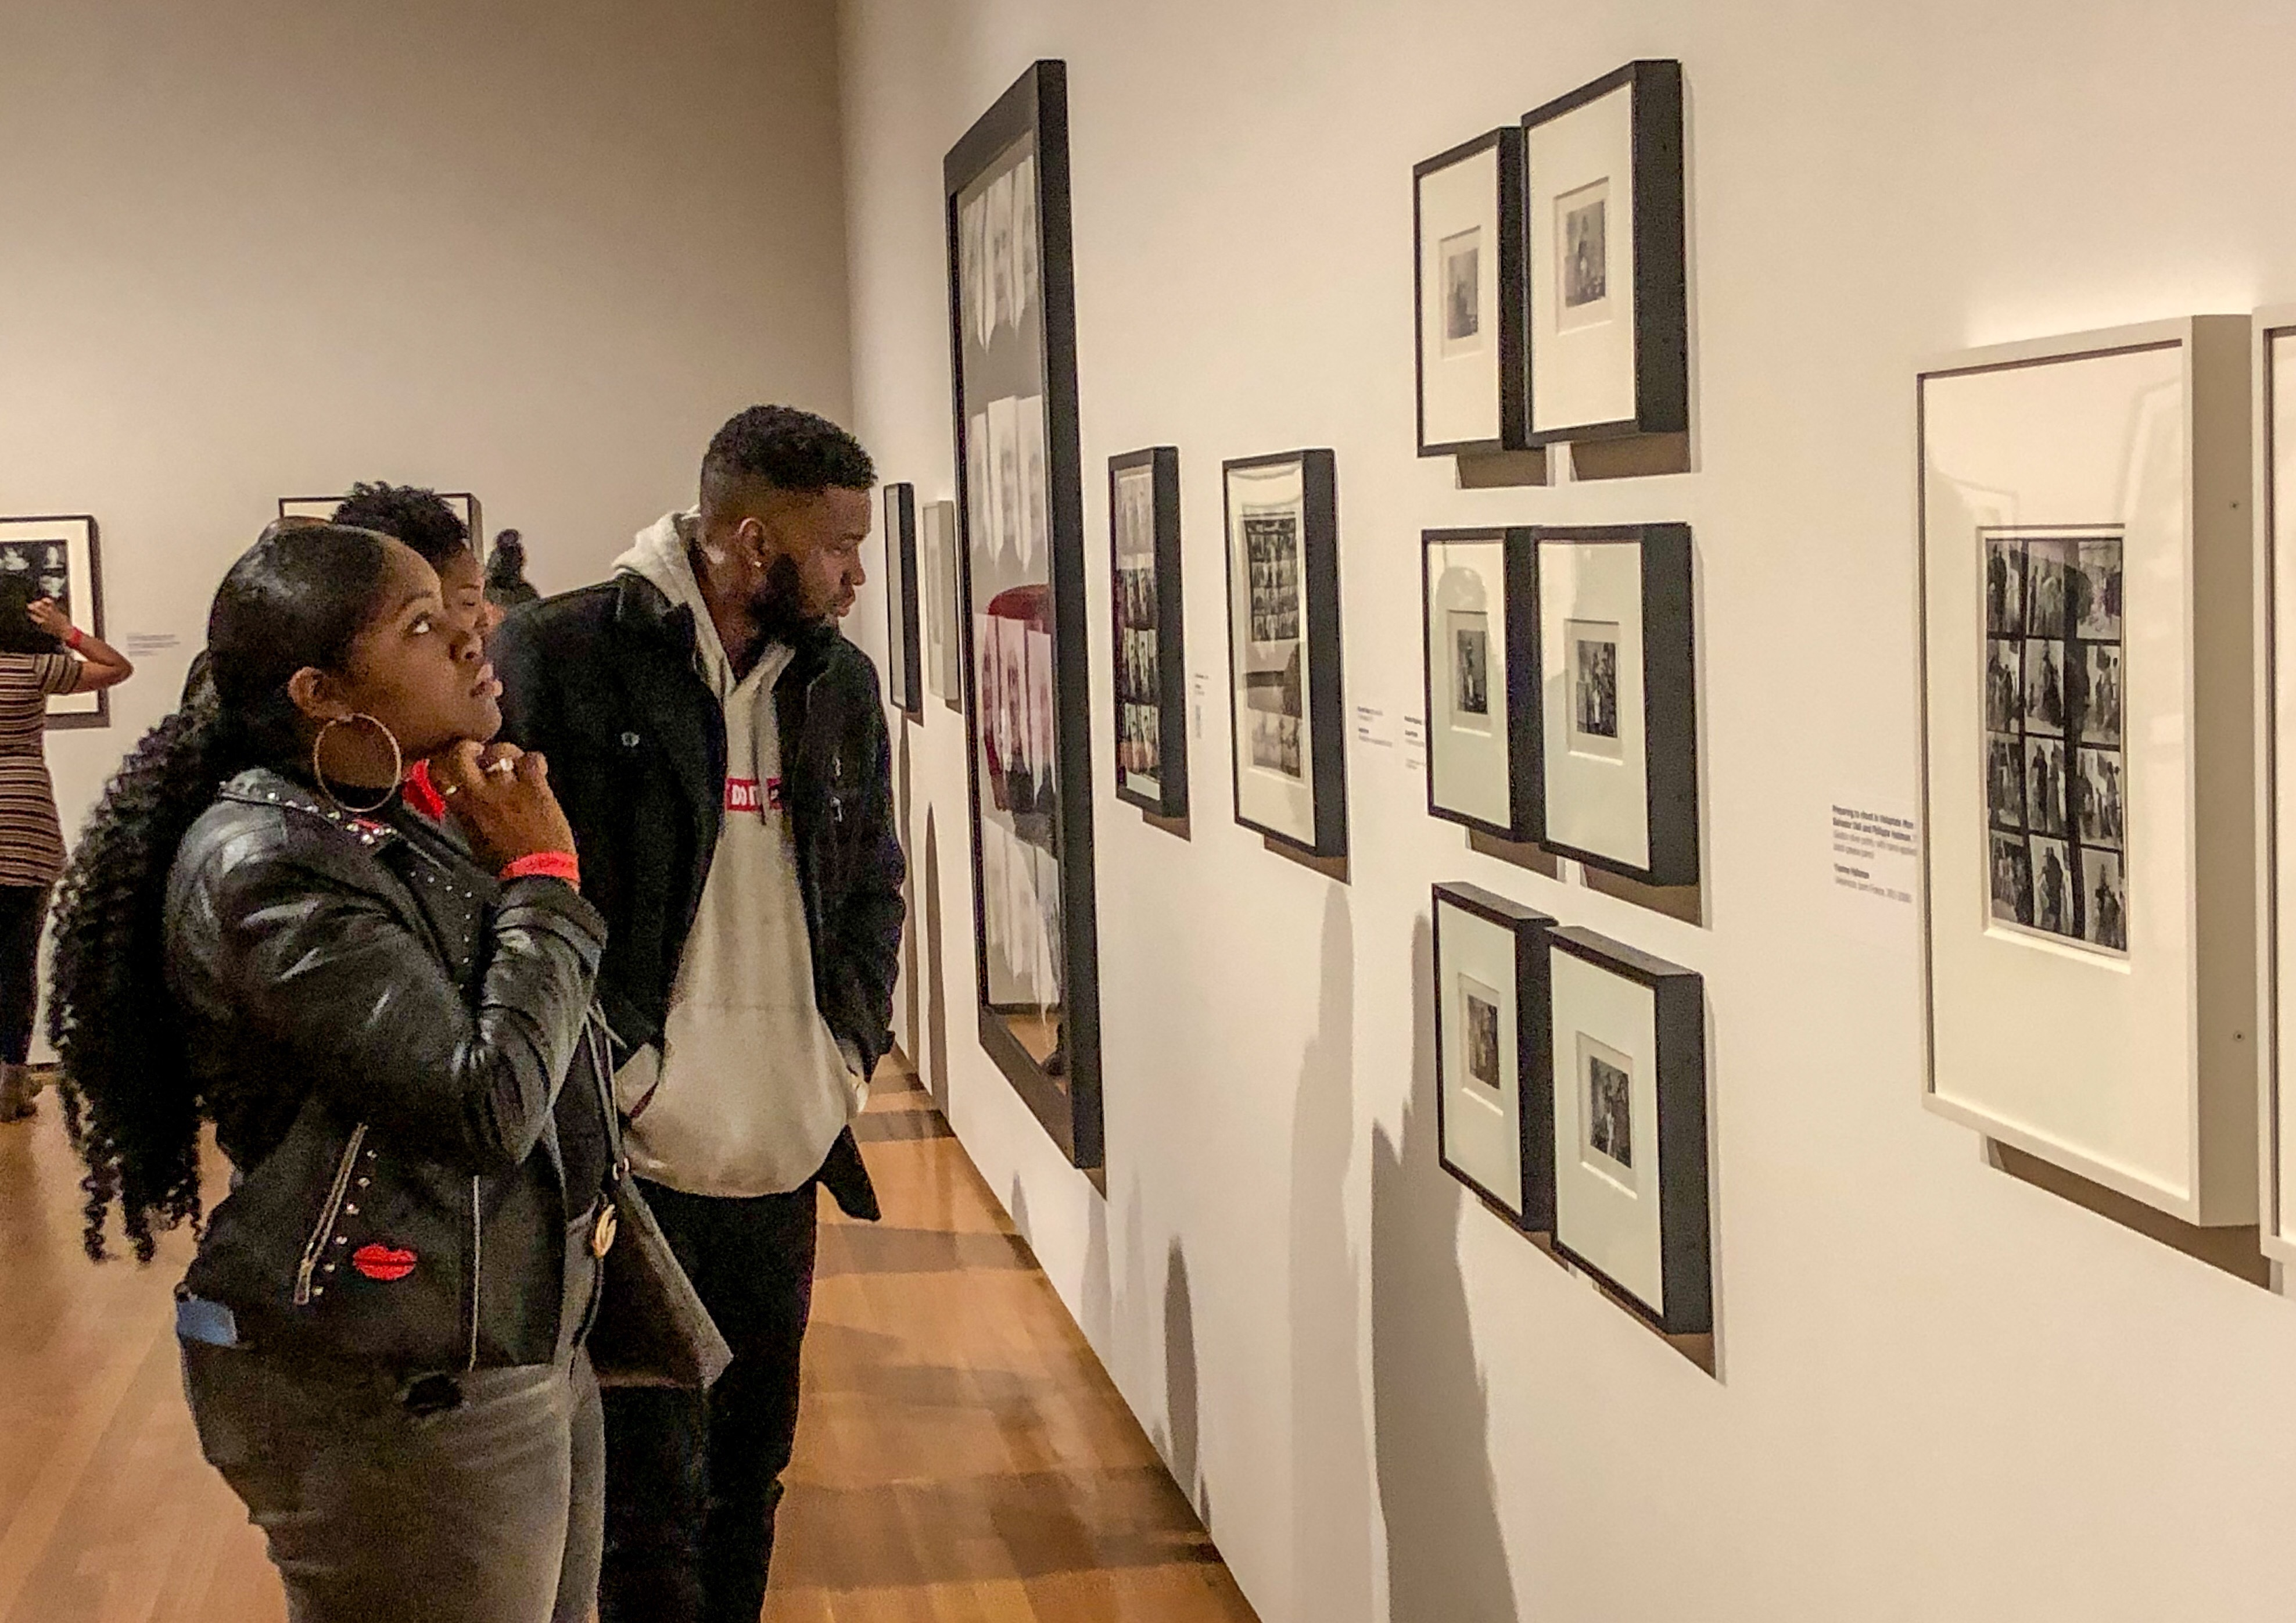 Two Cleveland Museum of Art visitors viewing the PROOF: Photography in the Era of the Contact Sheet exhibition design